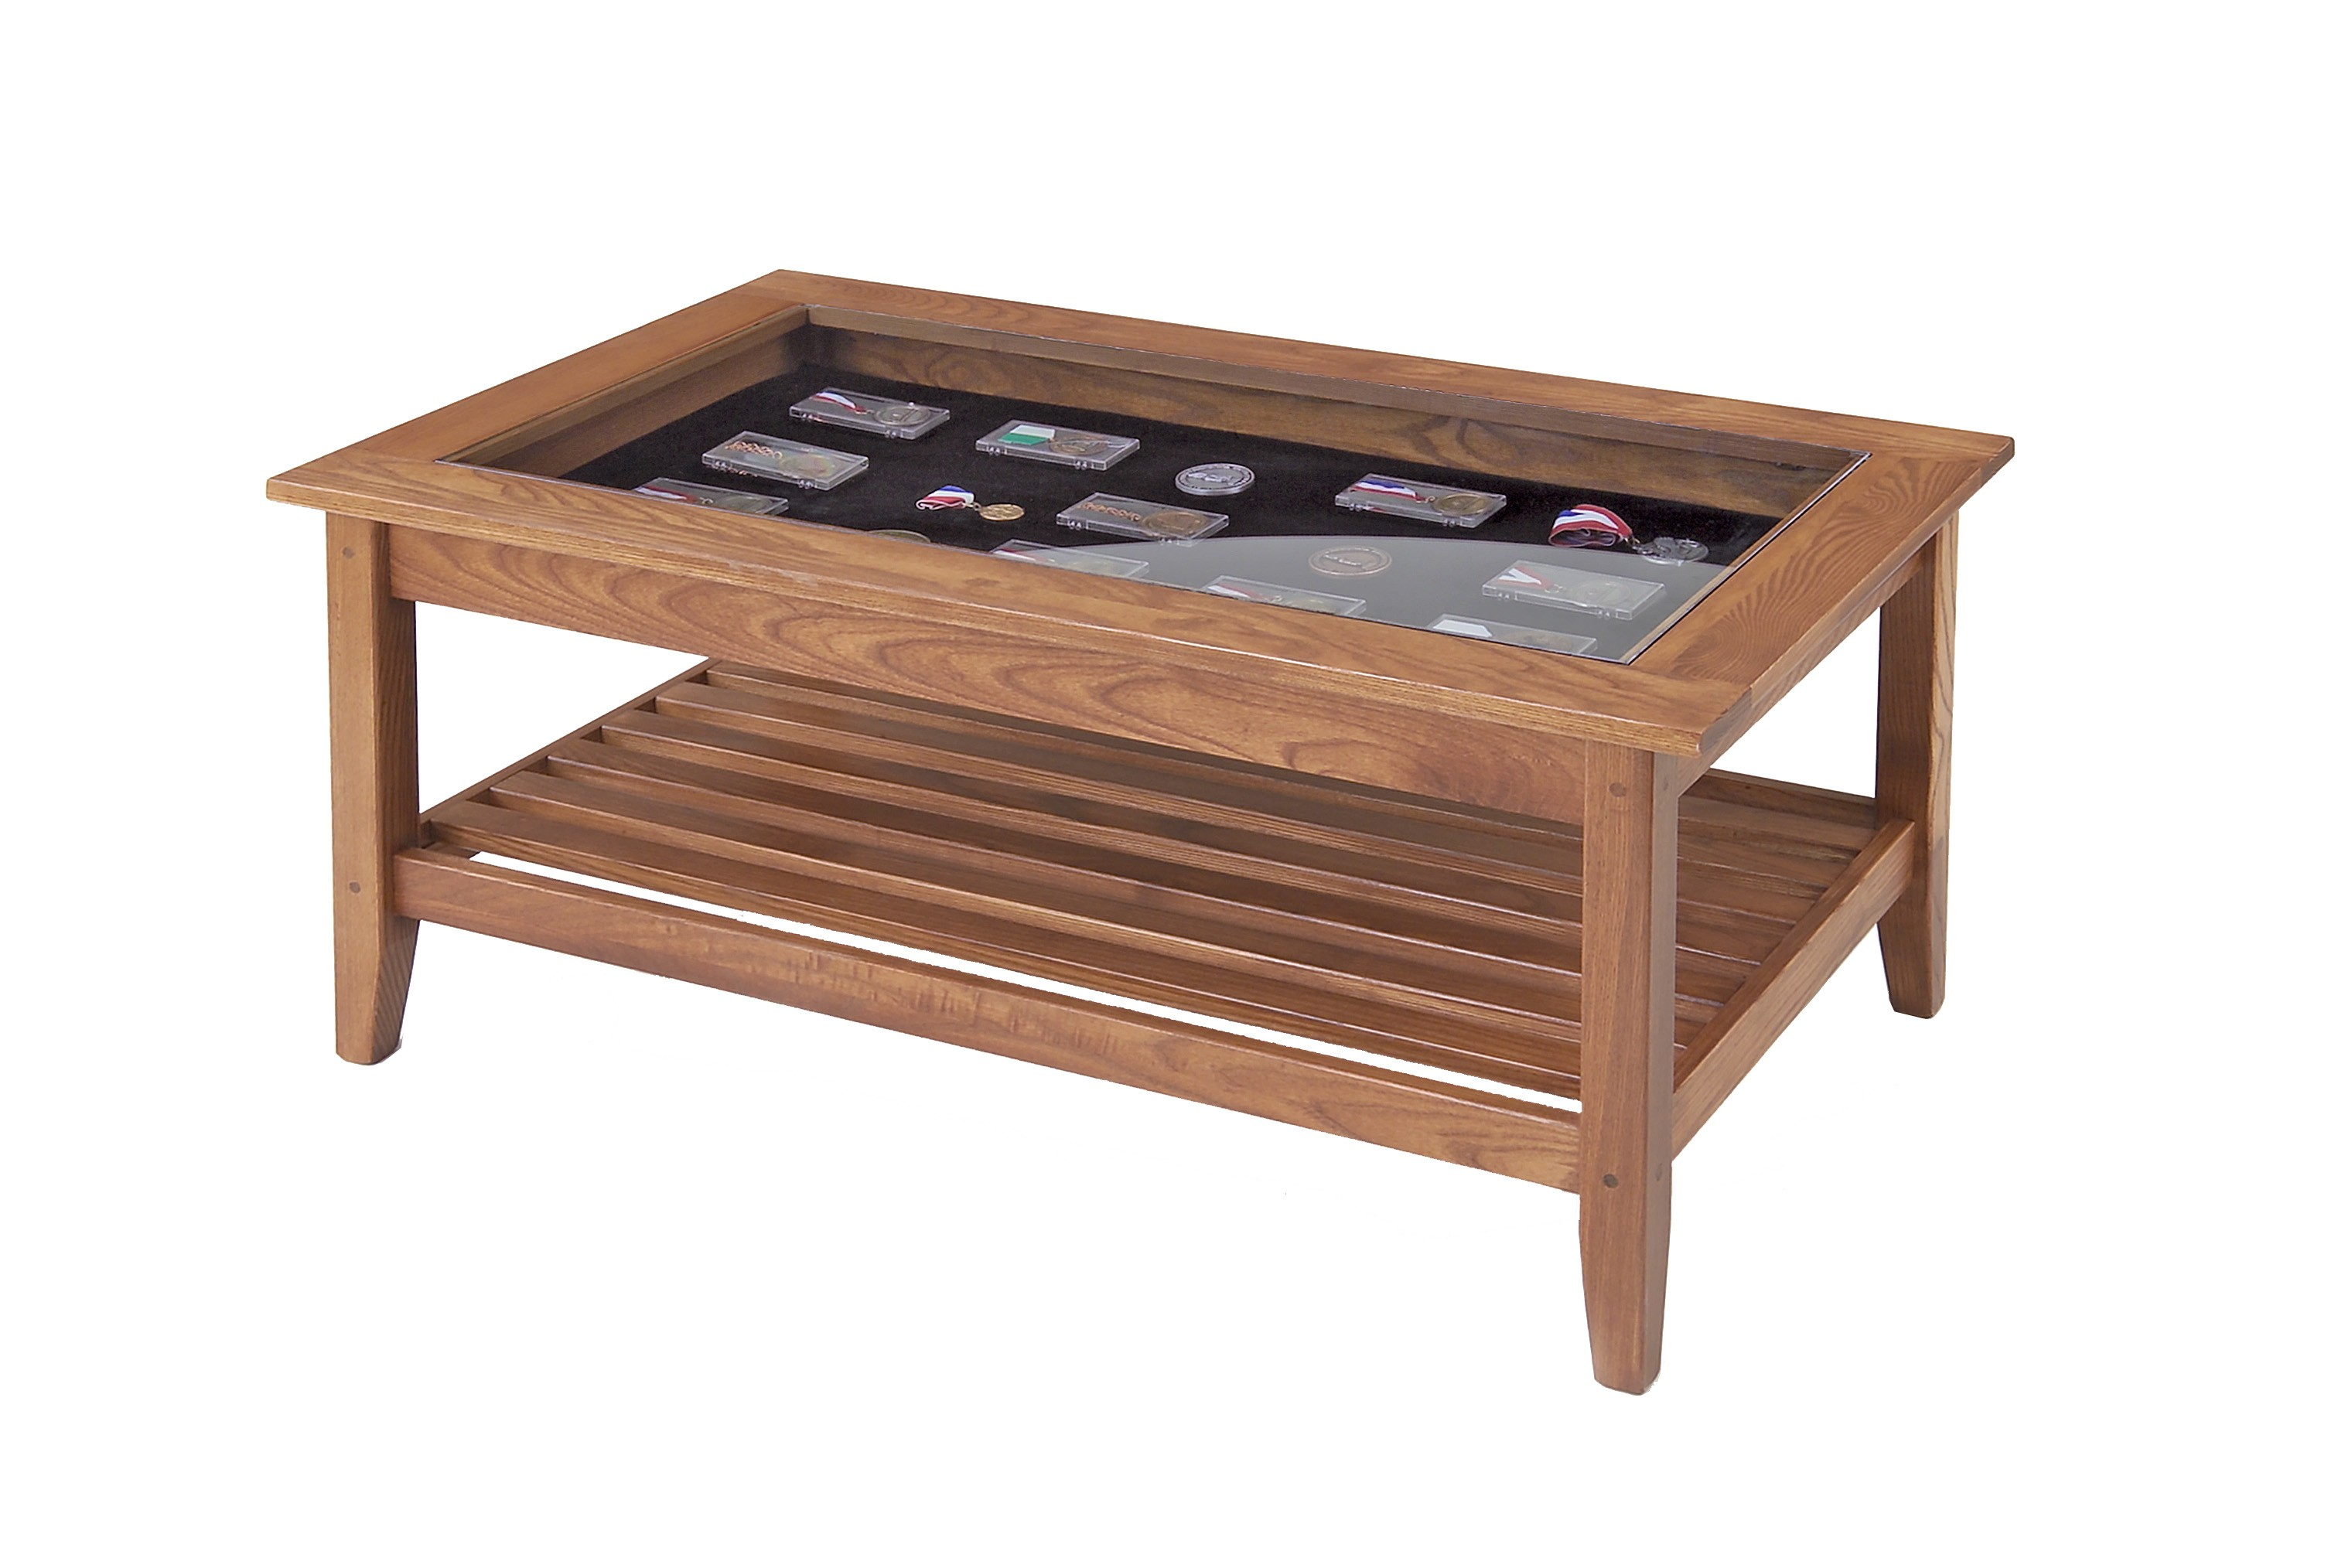 glass top coffee table design plans photo - 9